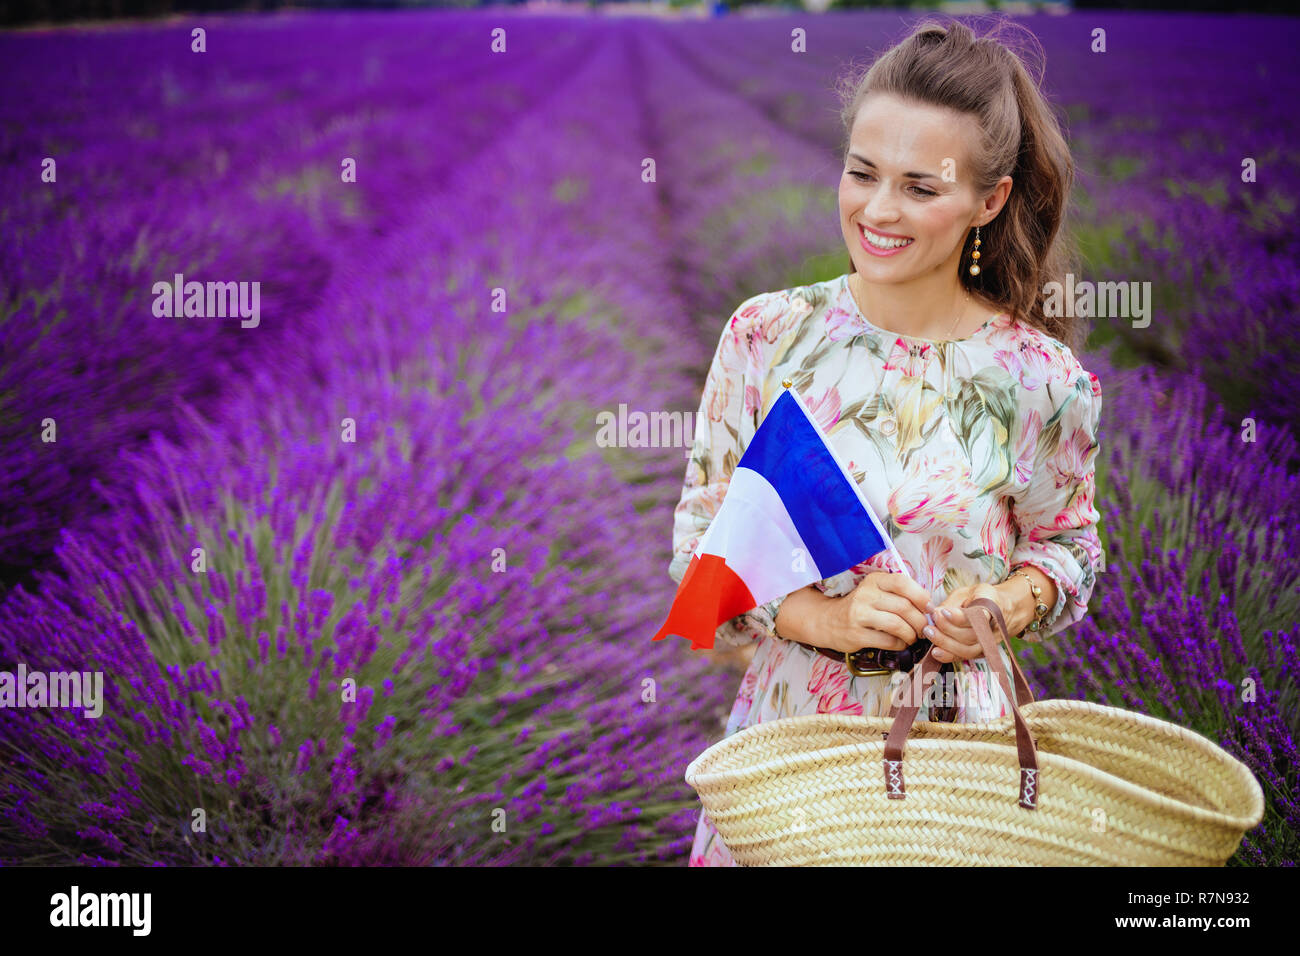 happy elegant woman in floral dress with straw bag and French flag against lavender field of Provence, France. The dream came true! Tourist woman enjo Stock Photo